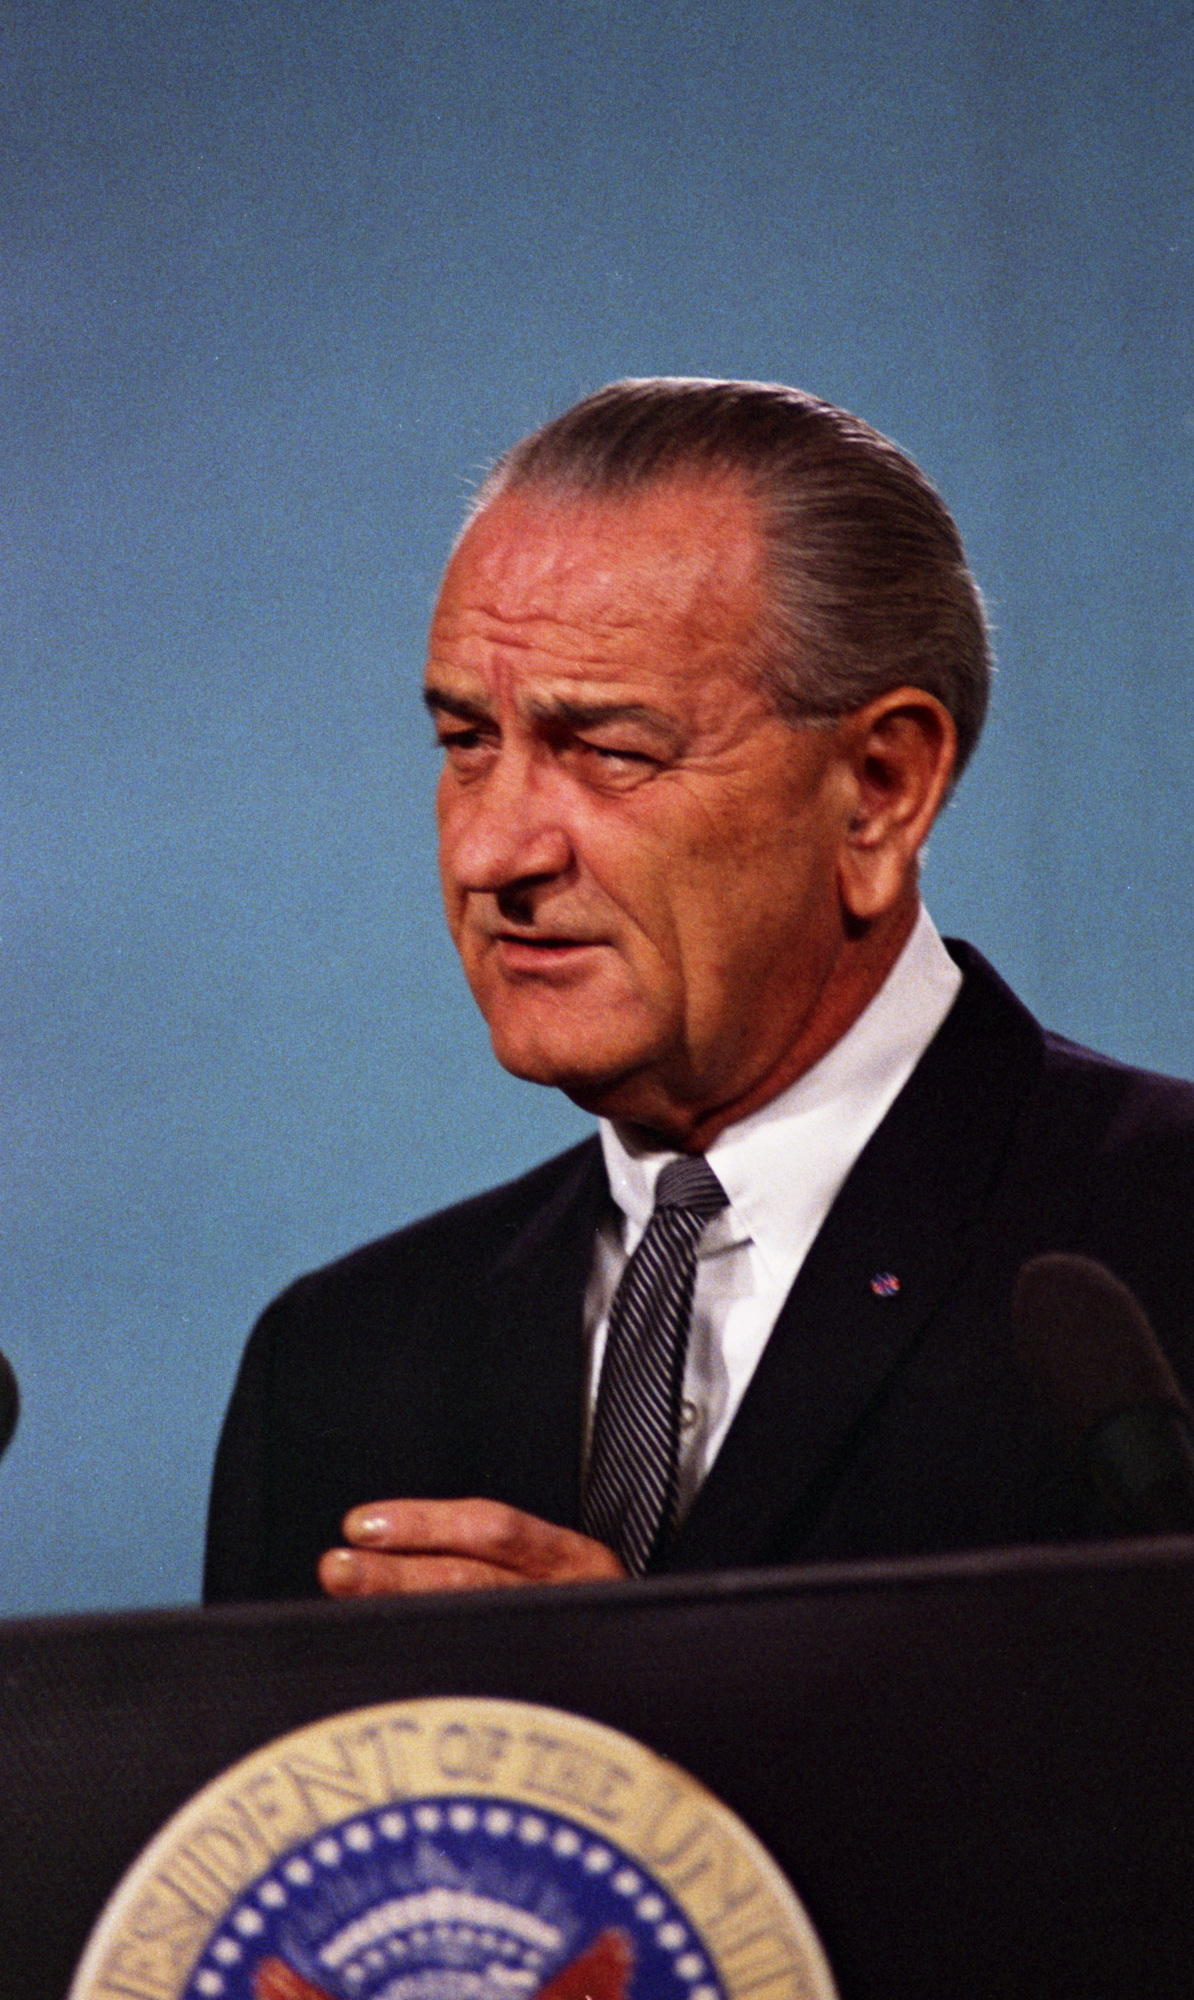 LBJ visit to Lake Erie led to cleaner waters | WBFO